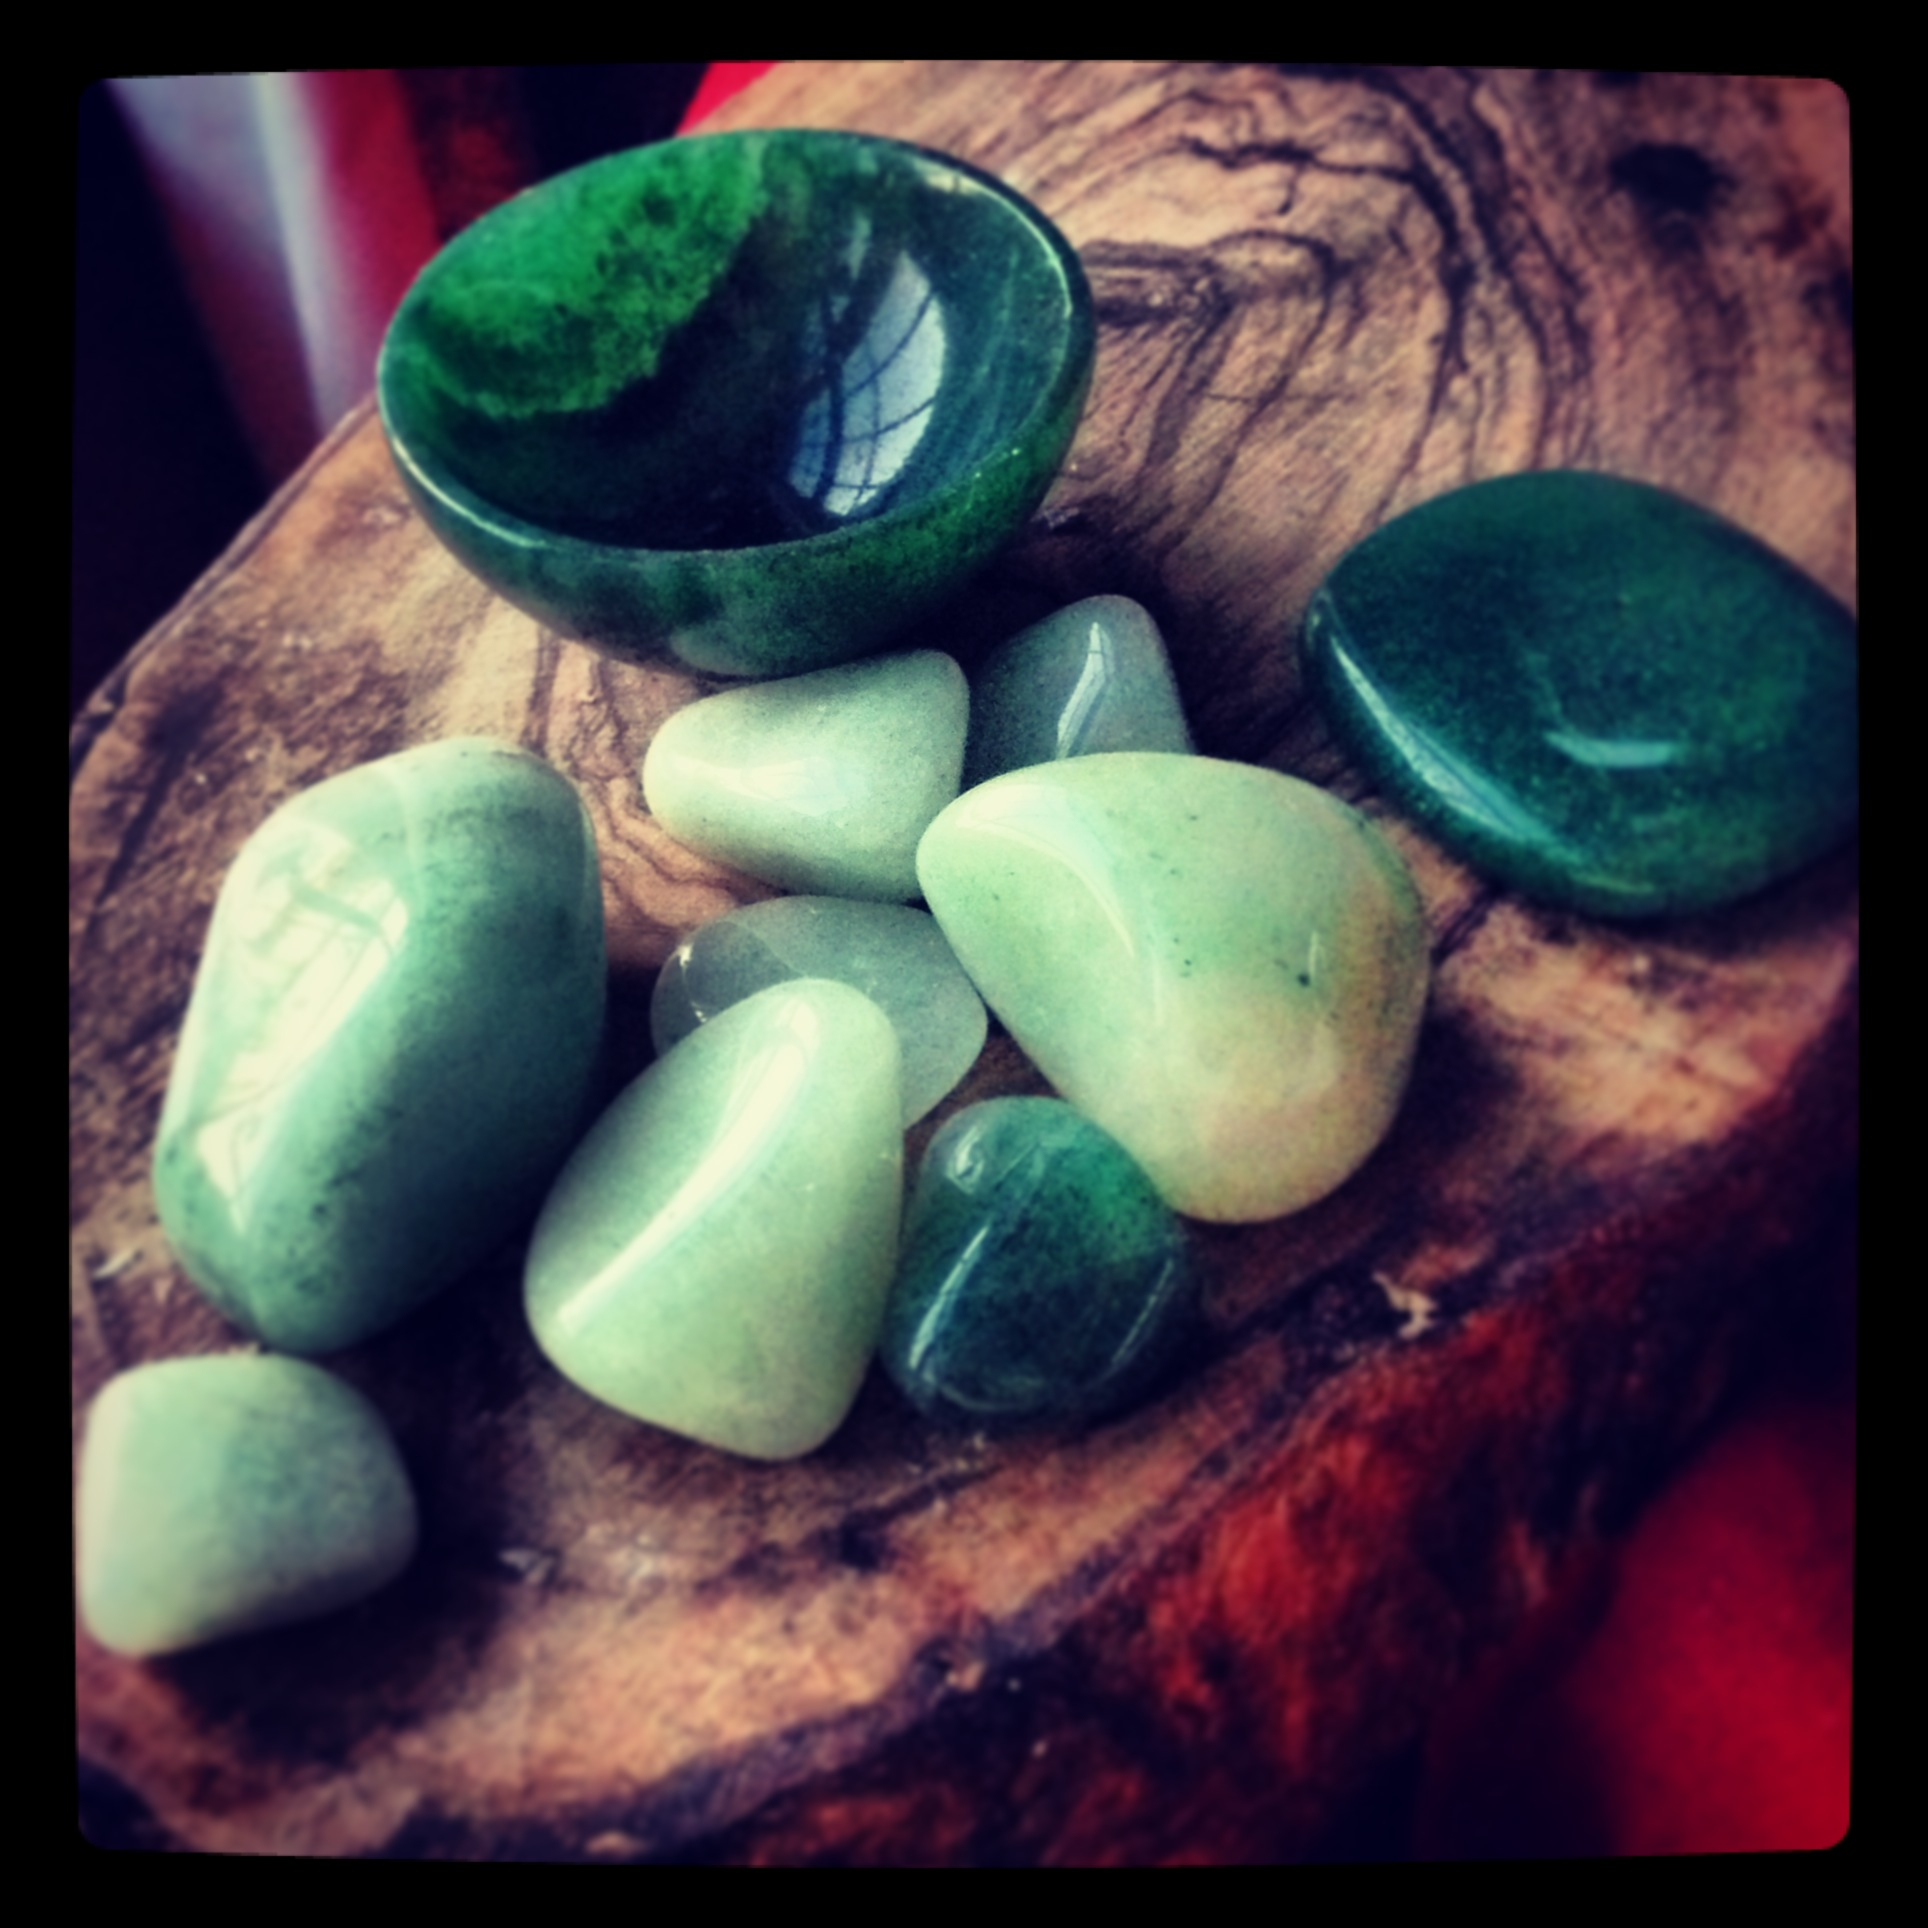 Green Aventurine's tones range from pale green to deep forest green, and these tumblies are great for pockets, mojo bags, and for heart healing work. The larger flat palm stone is one I use in crystal healing sessions for the heart chakra or after psychic surgery. The Green Aventurine bowl in the back is a perfect addition to my altar spaces, and usually holds seasonal herbs, flowers or magickal correspondences.